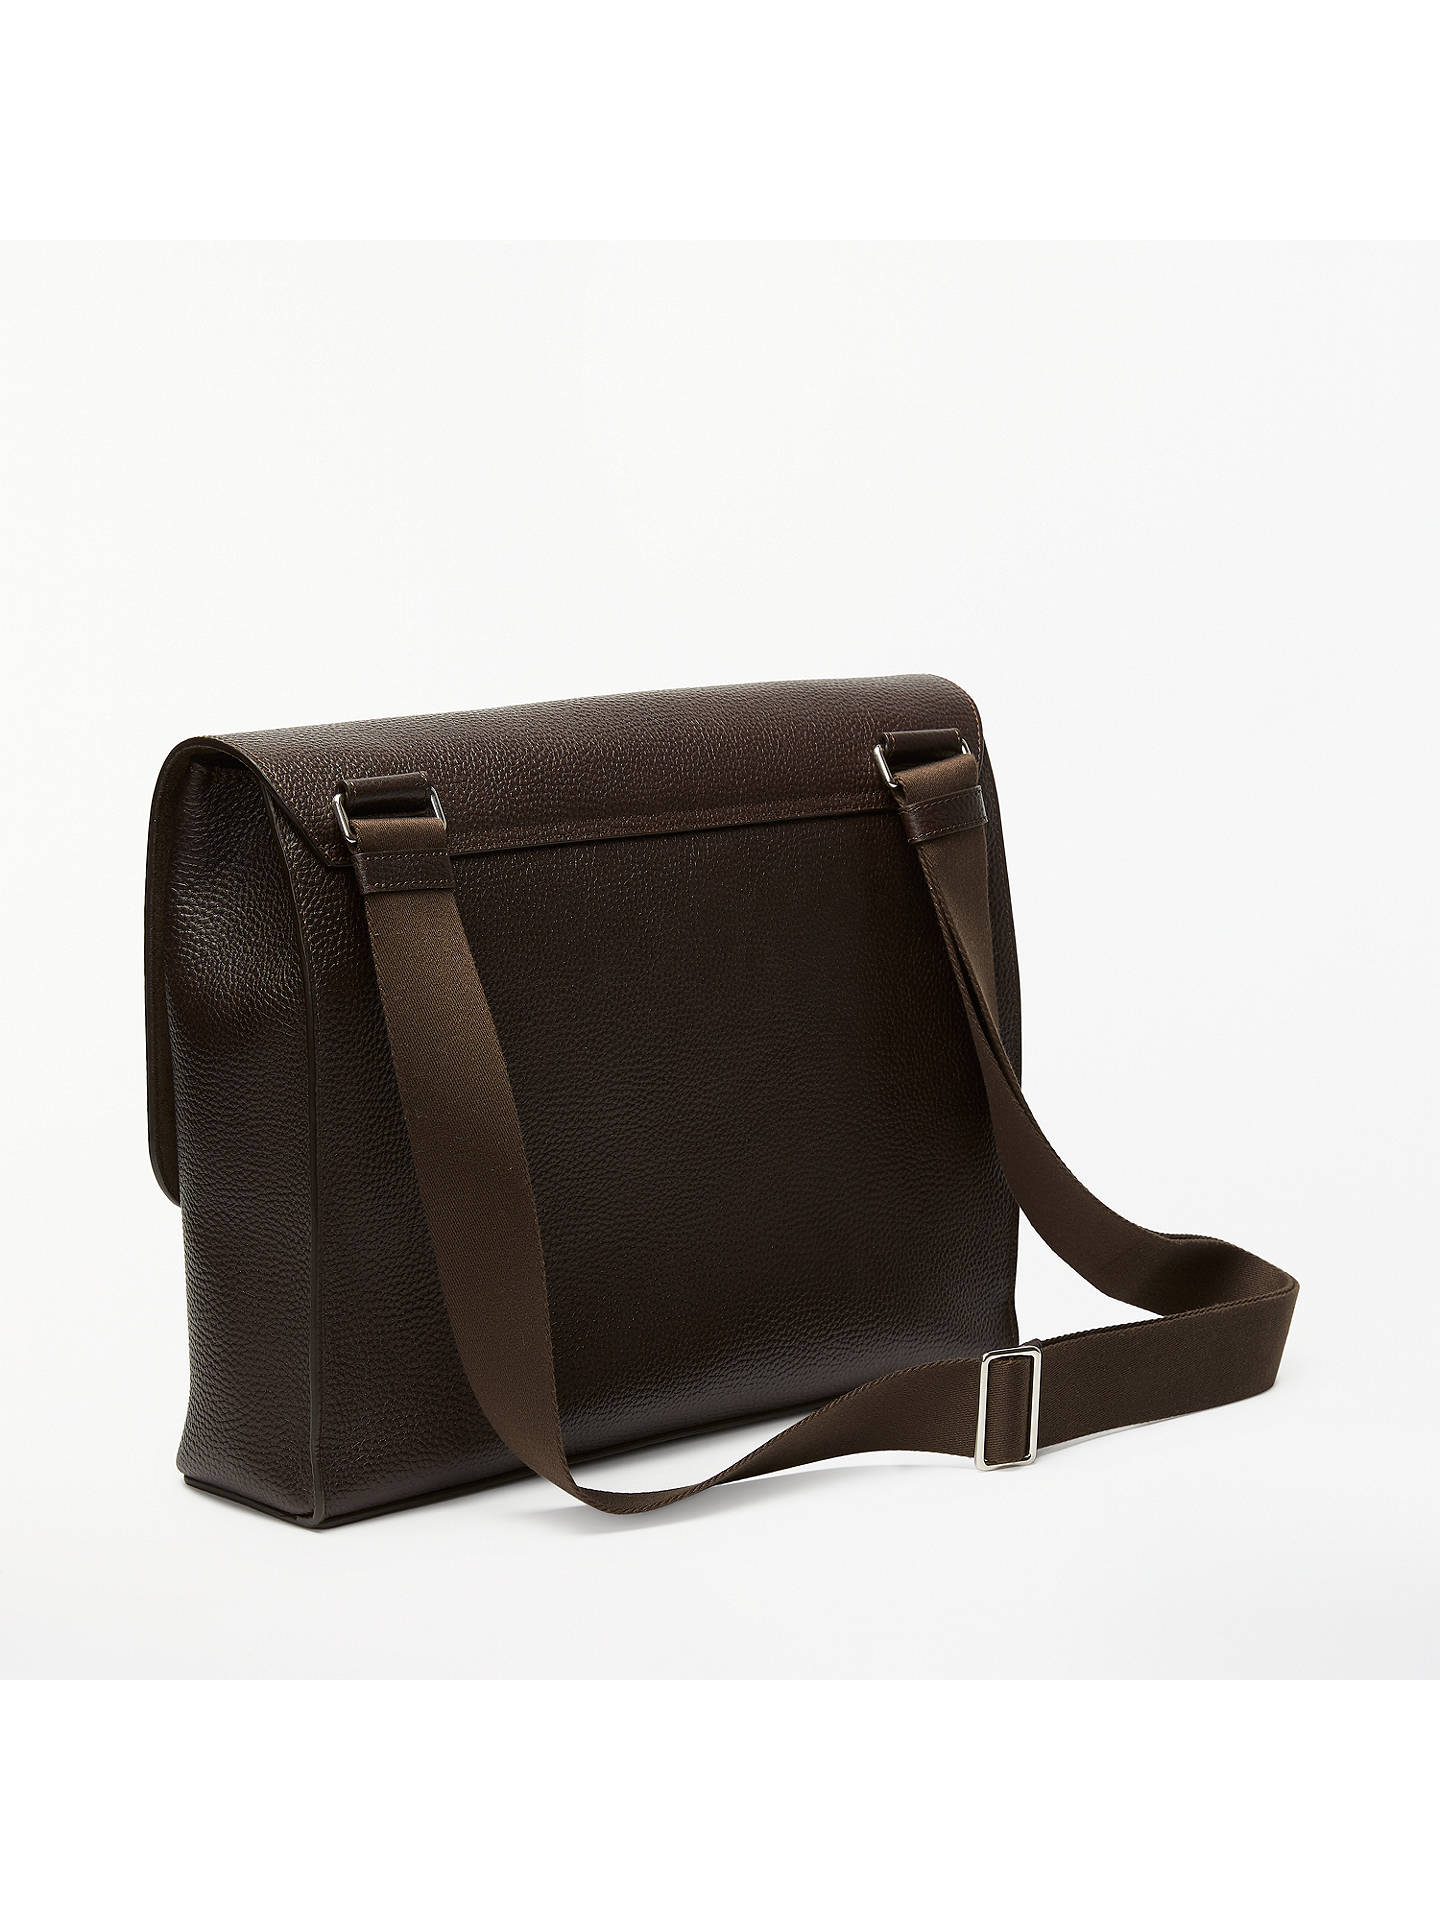 083ee1bf5b ... low price buymulberry east west antony messenger bag chocolate online at  johnlewis c6b02 b6686